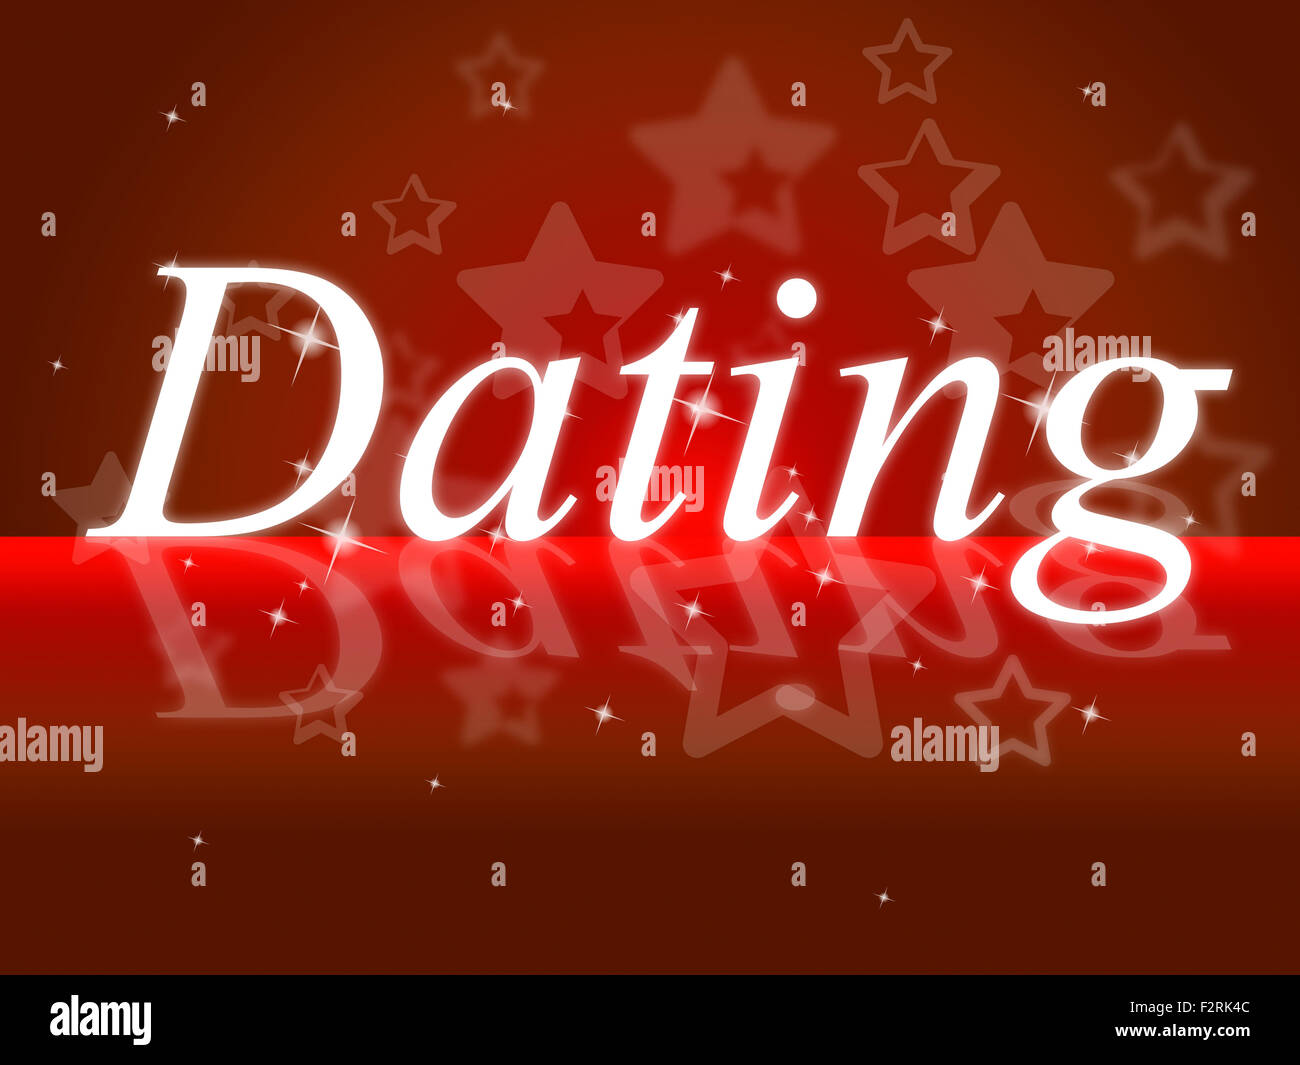 dating meaning